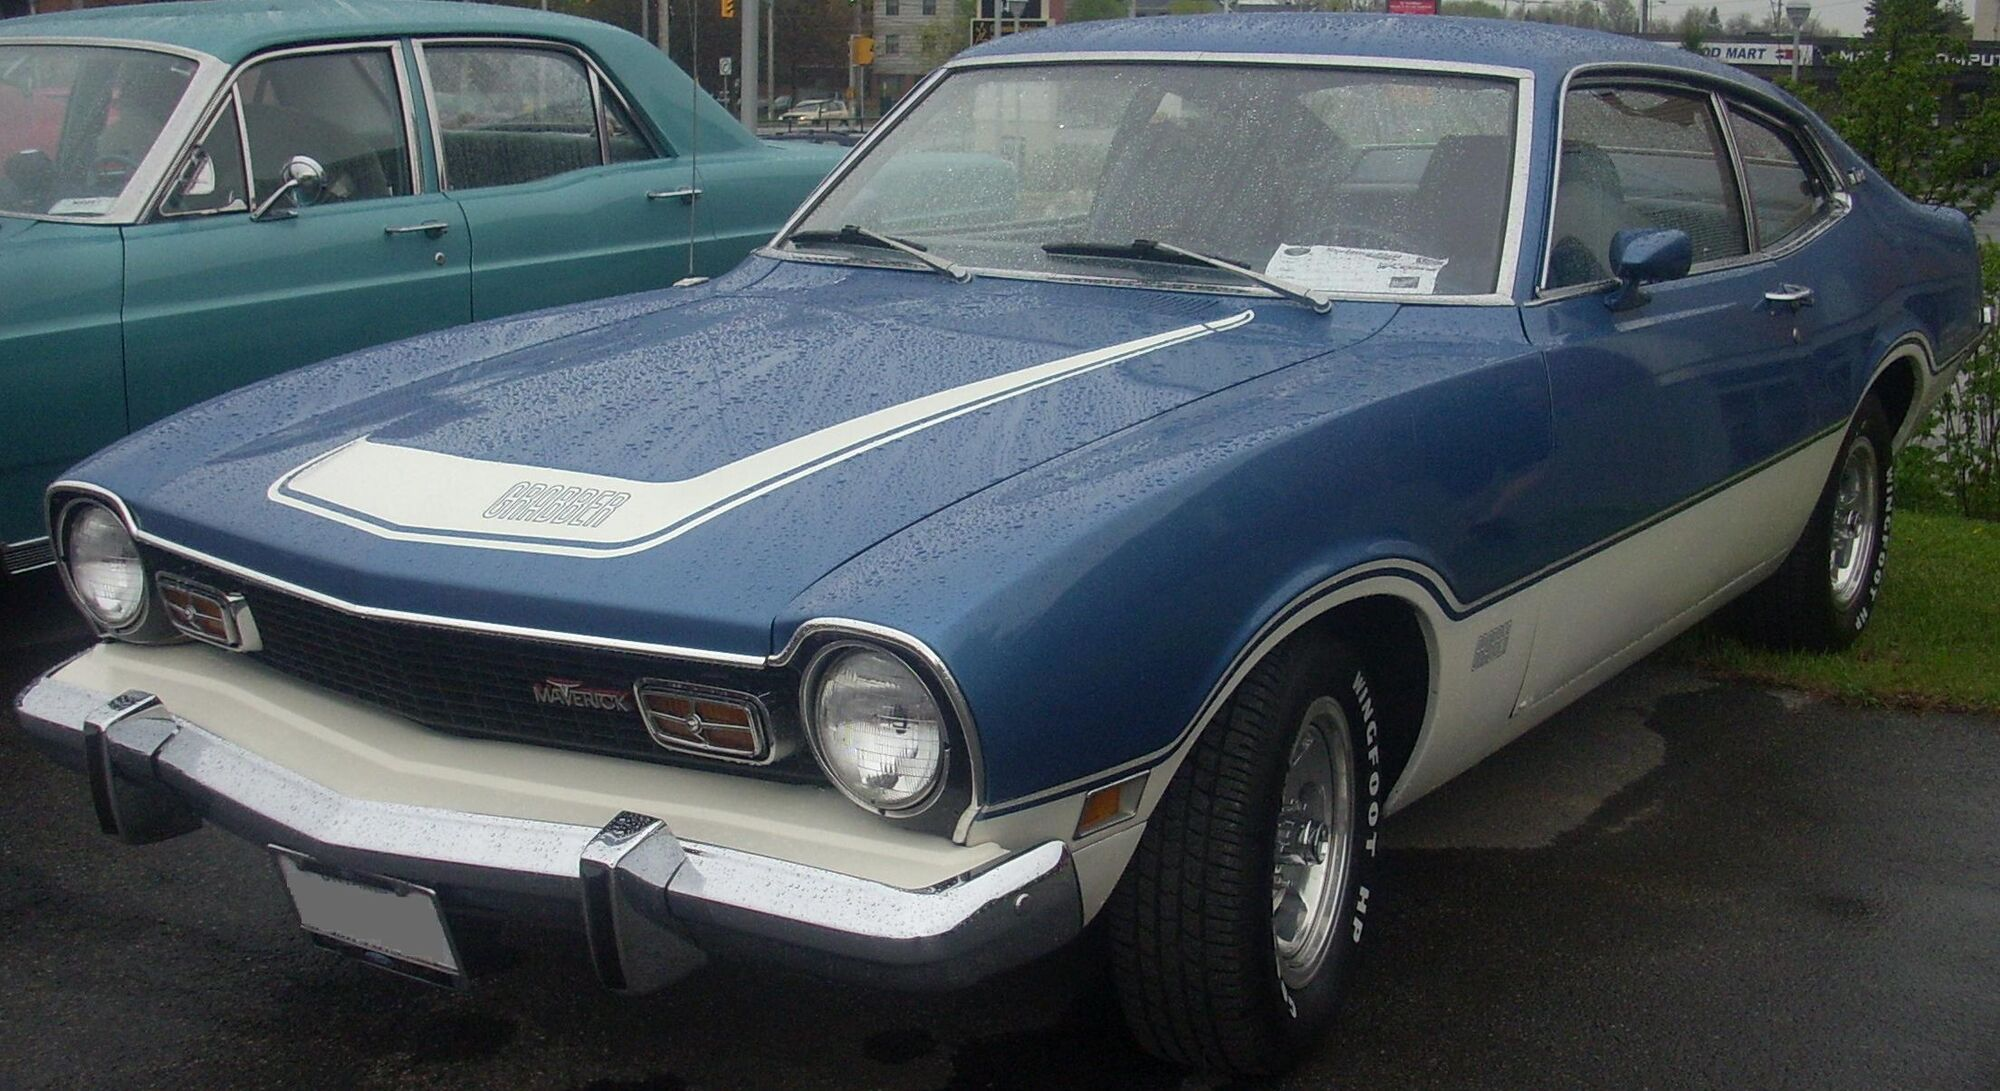 Ford Maverick Americas Tractor Construction Plant Wiki 1970 Thunderbird 2 Door Fandom Powered By Wikia